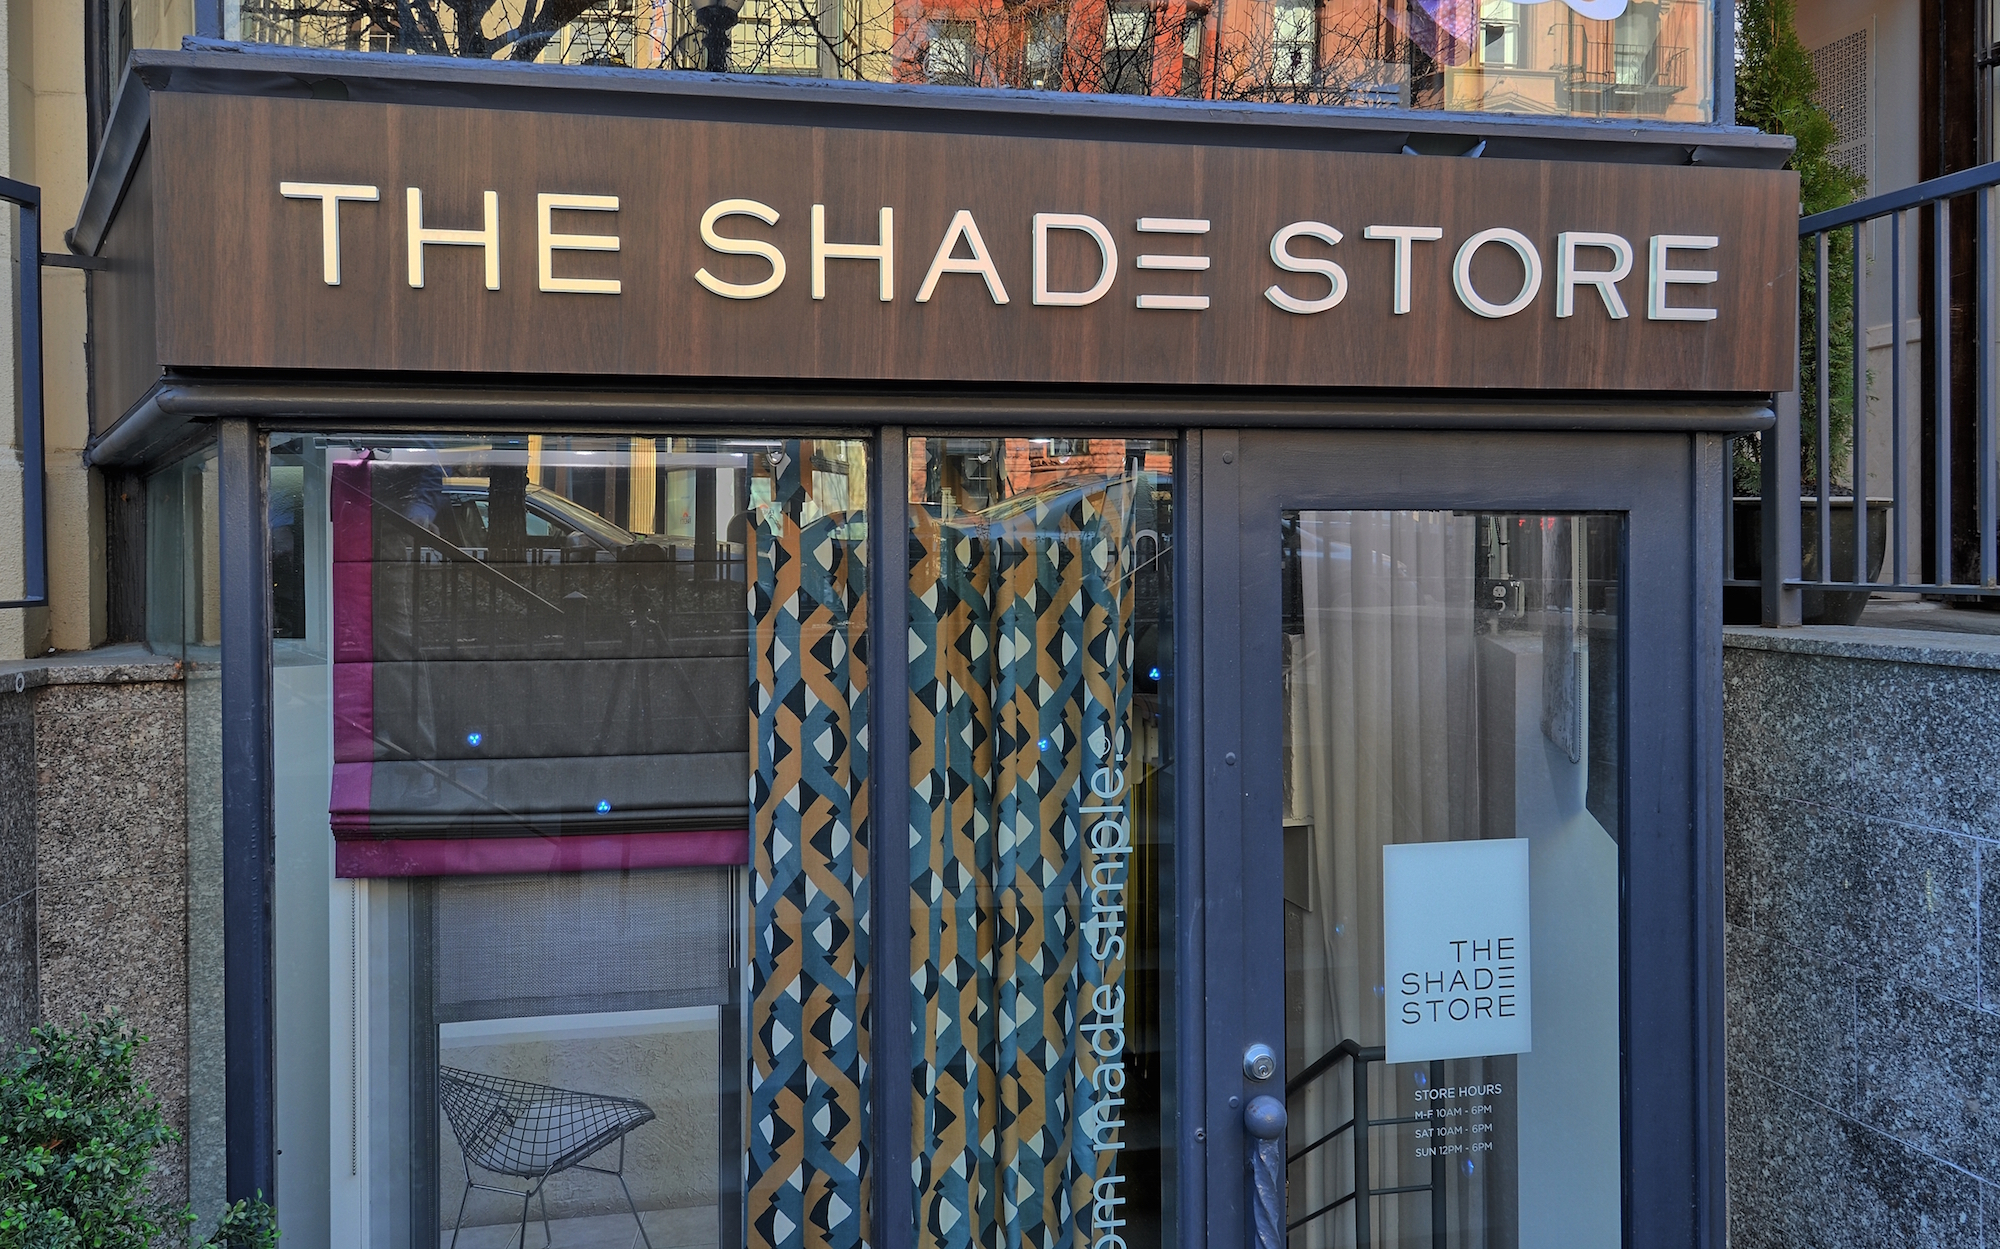 We're working with The Shade Store on a new project that will be debuting soon as a webisode! The home is a complete transformation! Typically when people move into a new space, one of the costs people forget to factor in are window treatments.